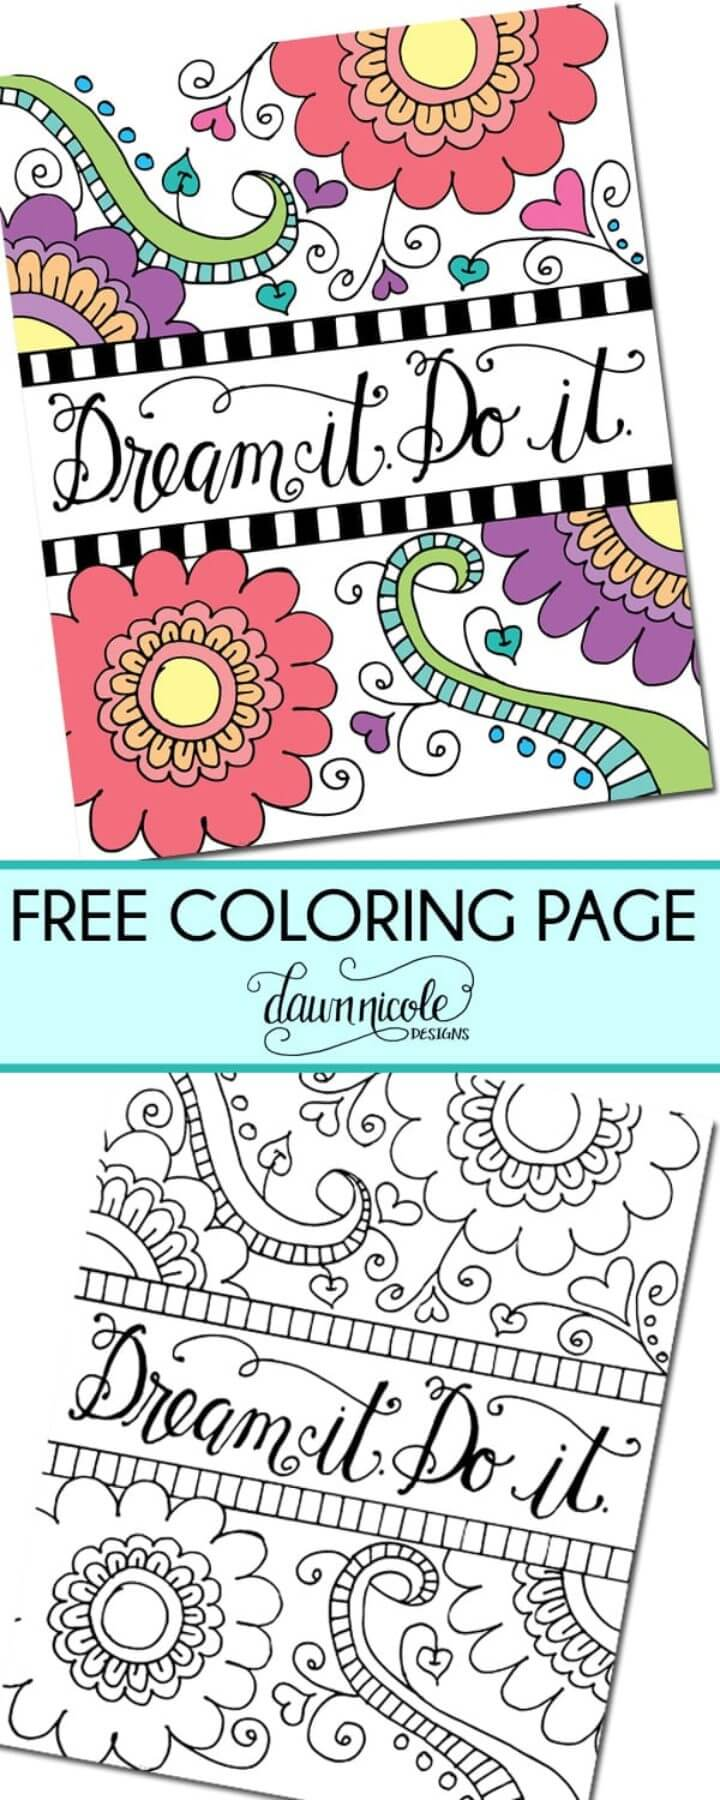 DREAM IT. DO IT. Free Coloring Page